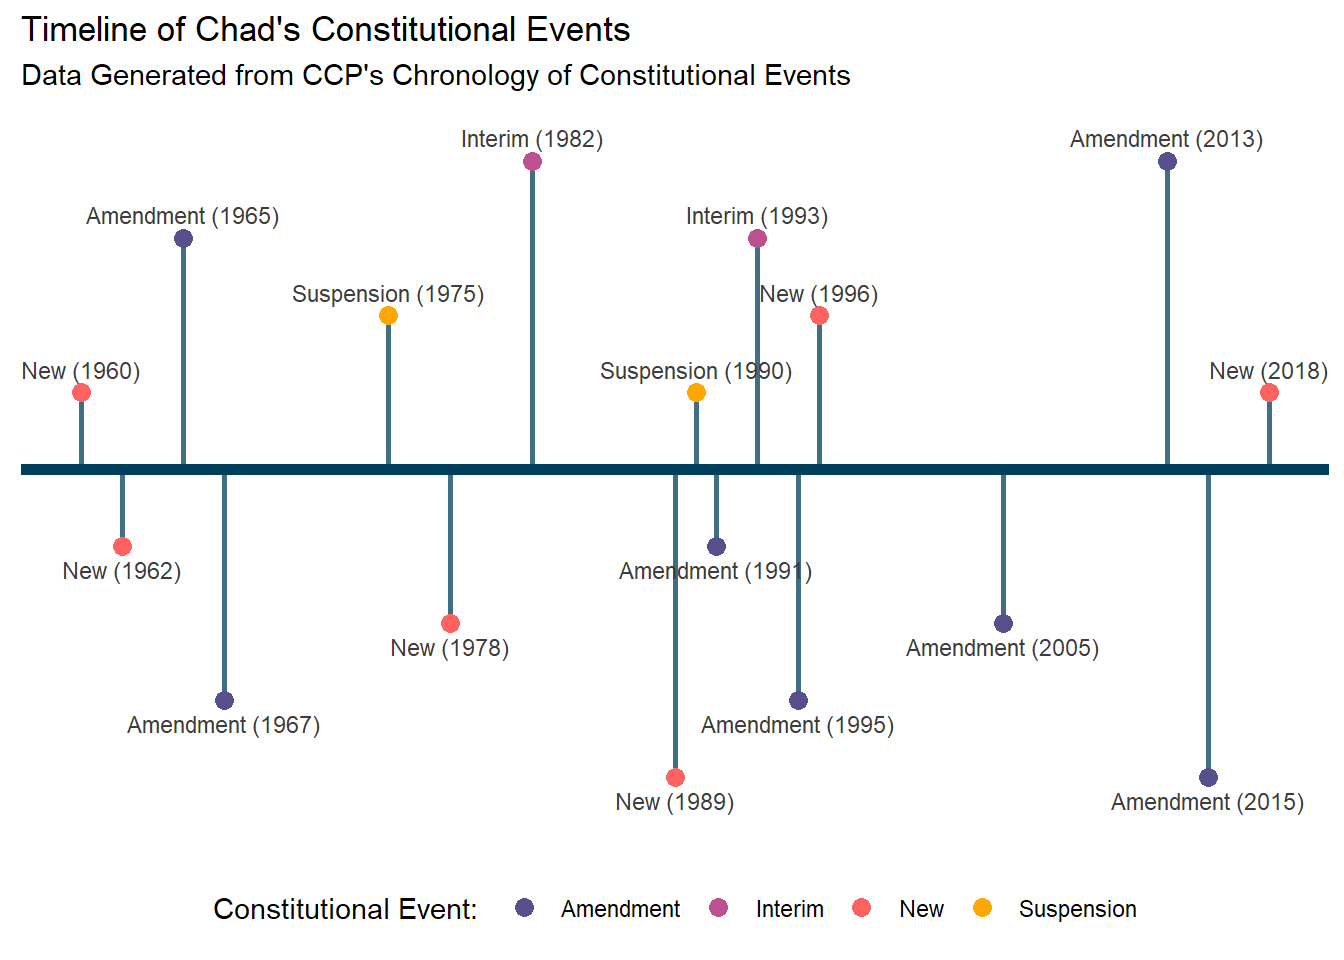 Timeline of Chad's constitutional events. Data generated by the Comparative Constitution Project's Chronology of Constitutional Events dataset.